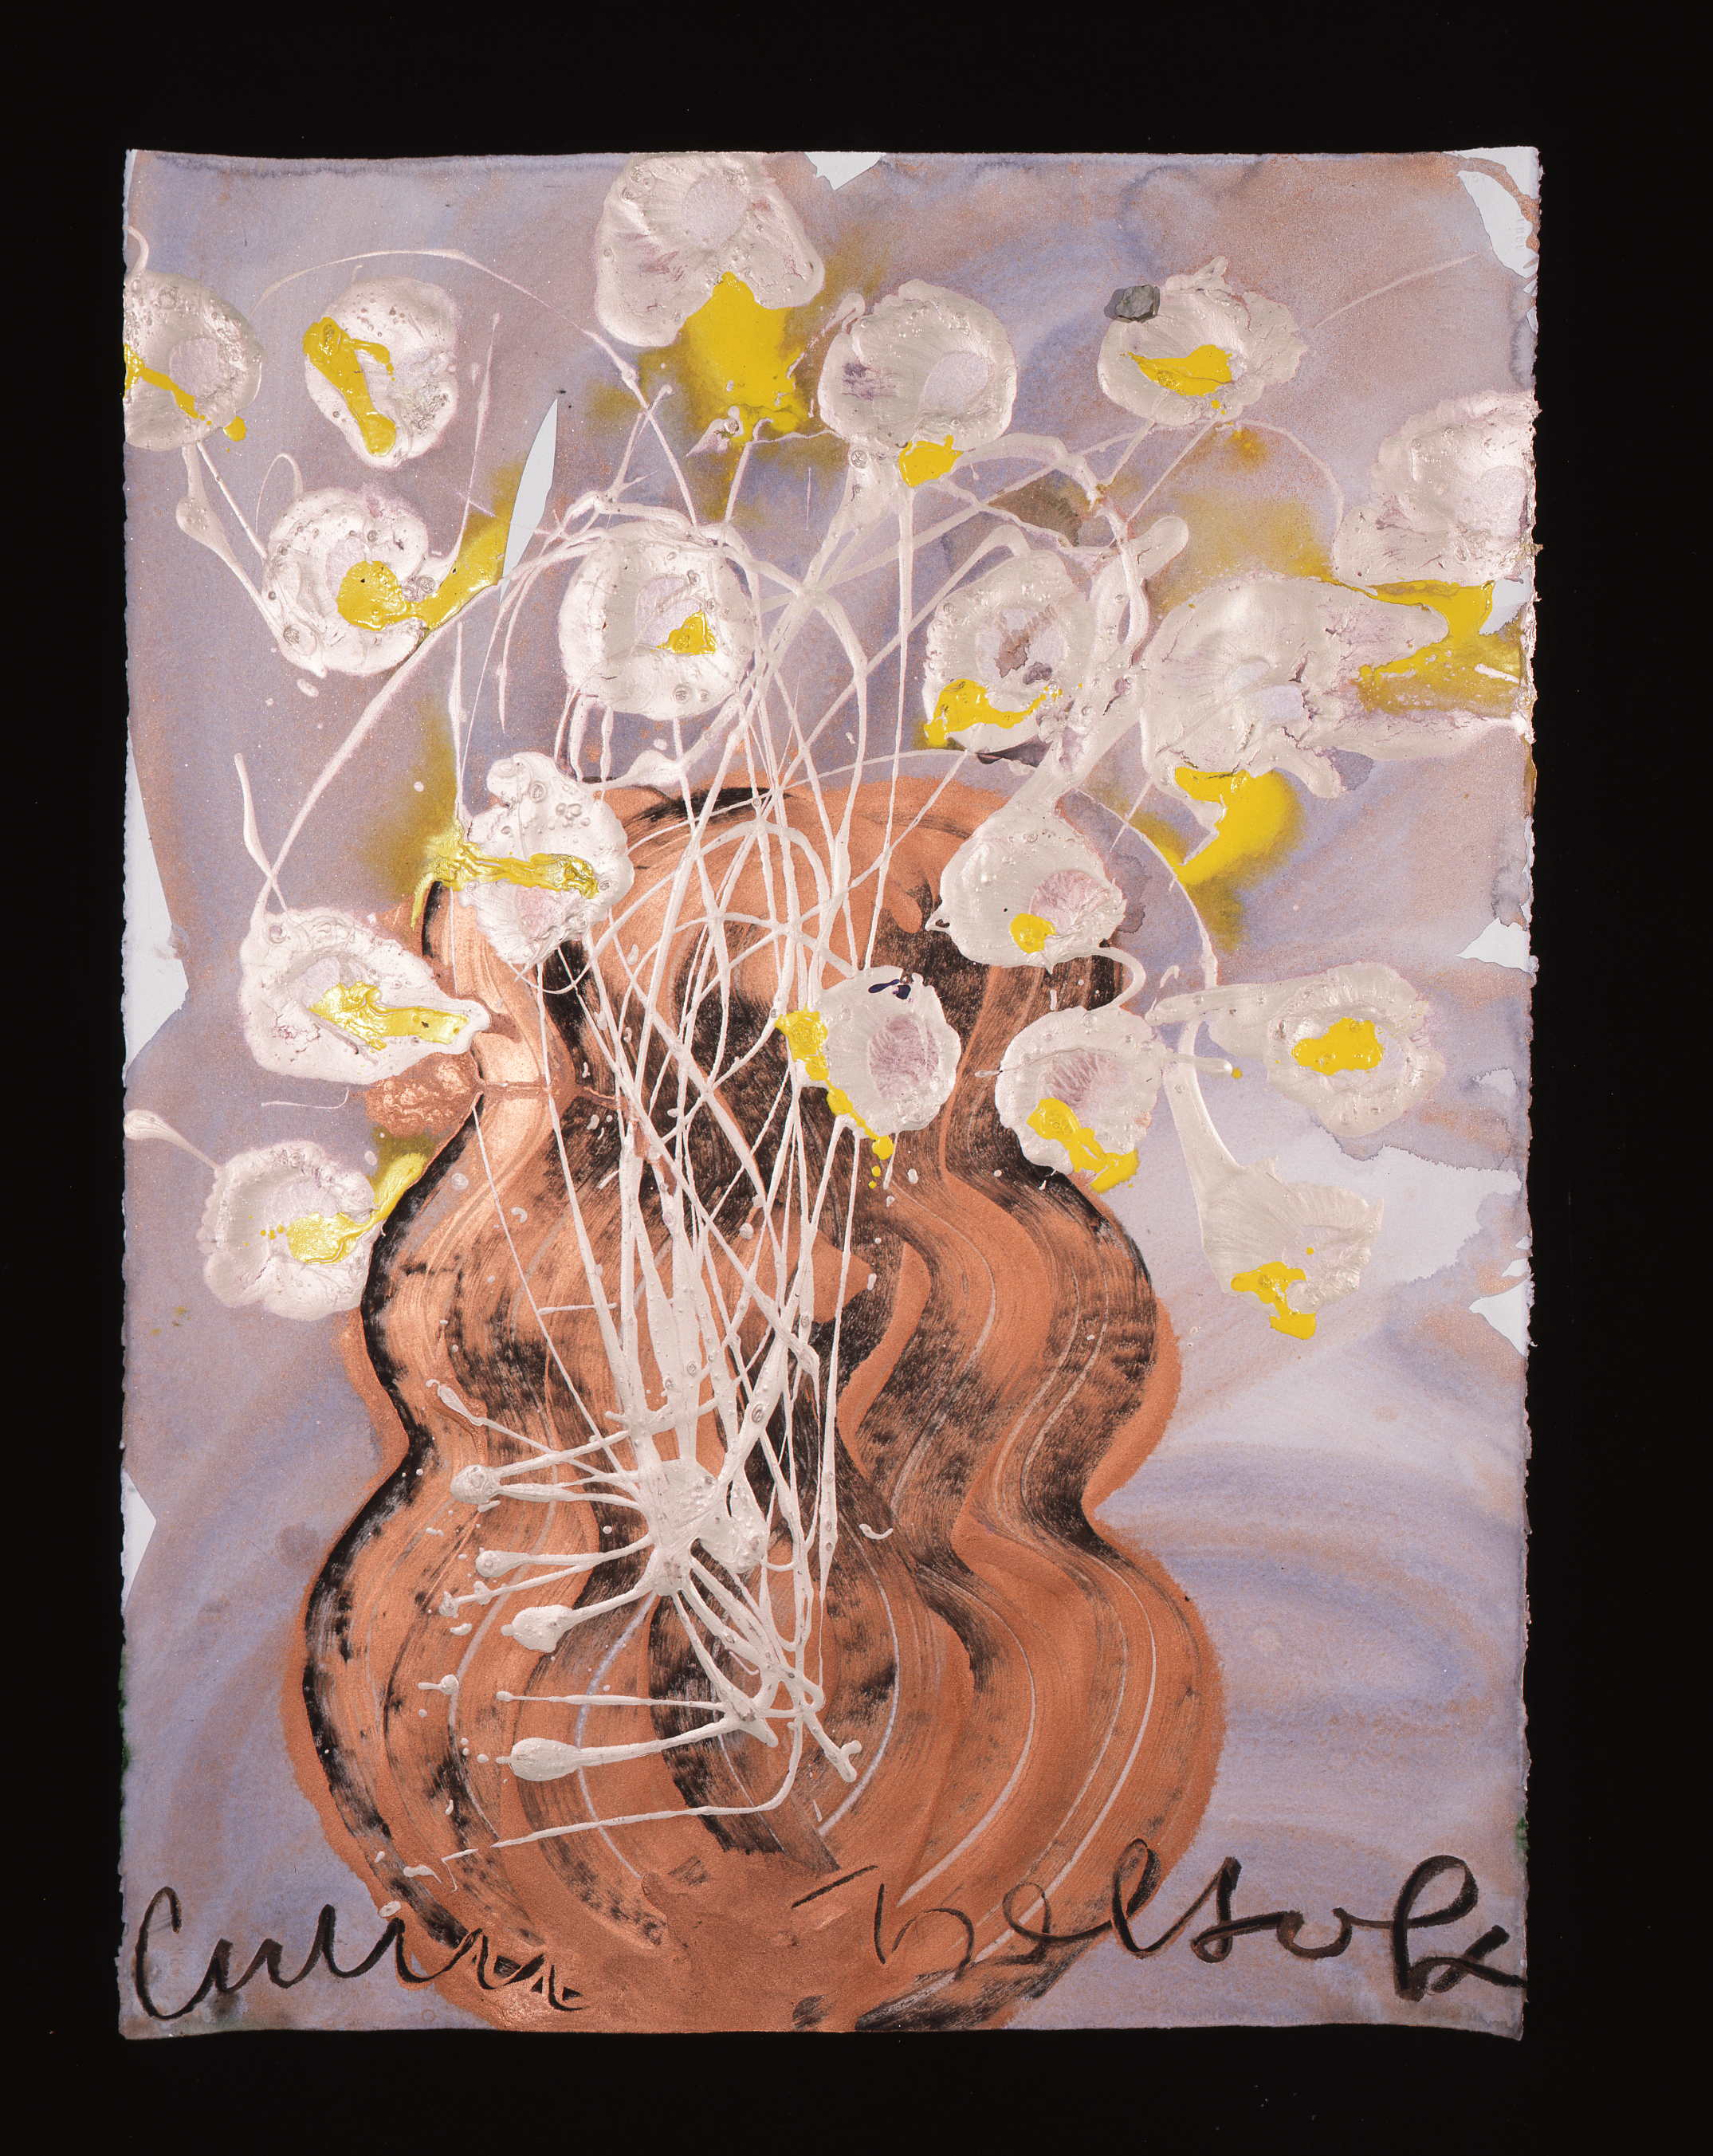 Dale Chihuly, Ebeltoft Drawing, (1991, mixed media on paper, 30 x 22 inches), DC.356